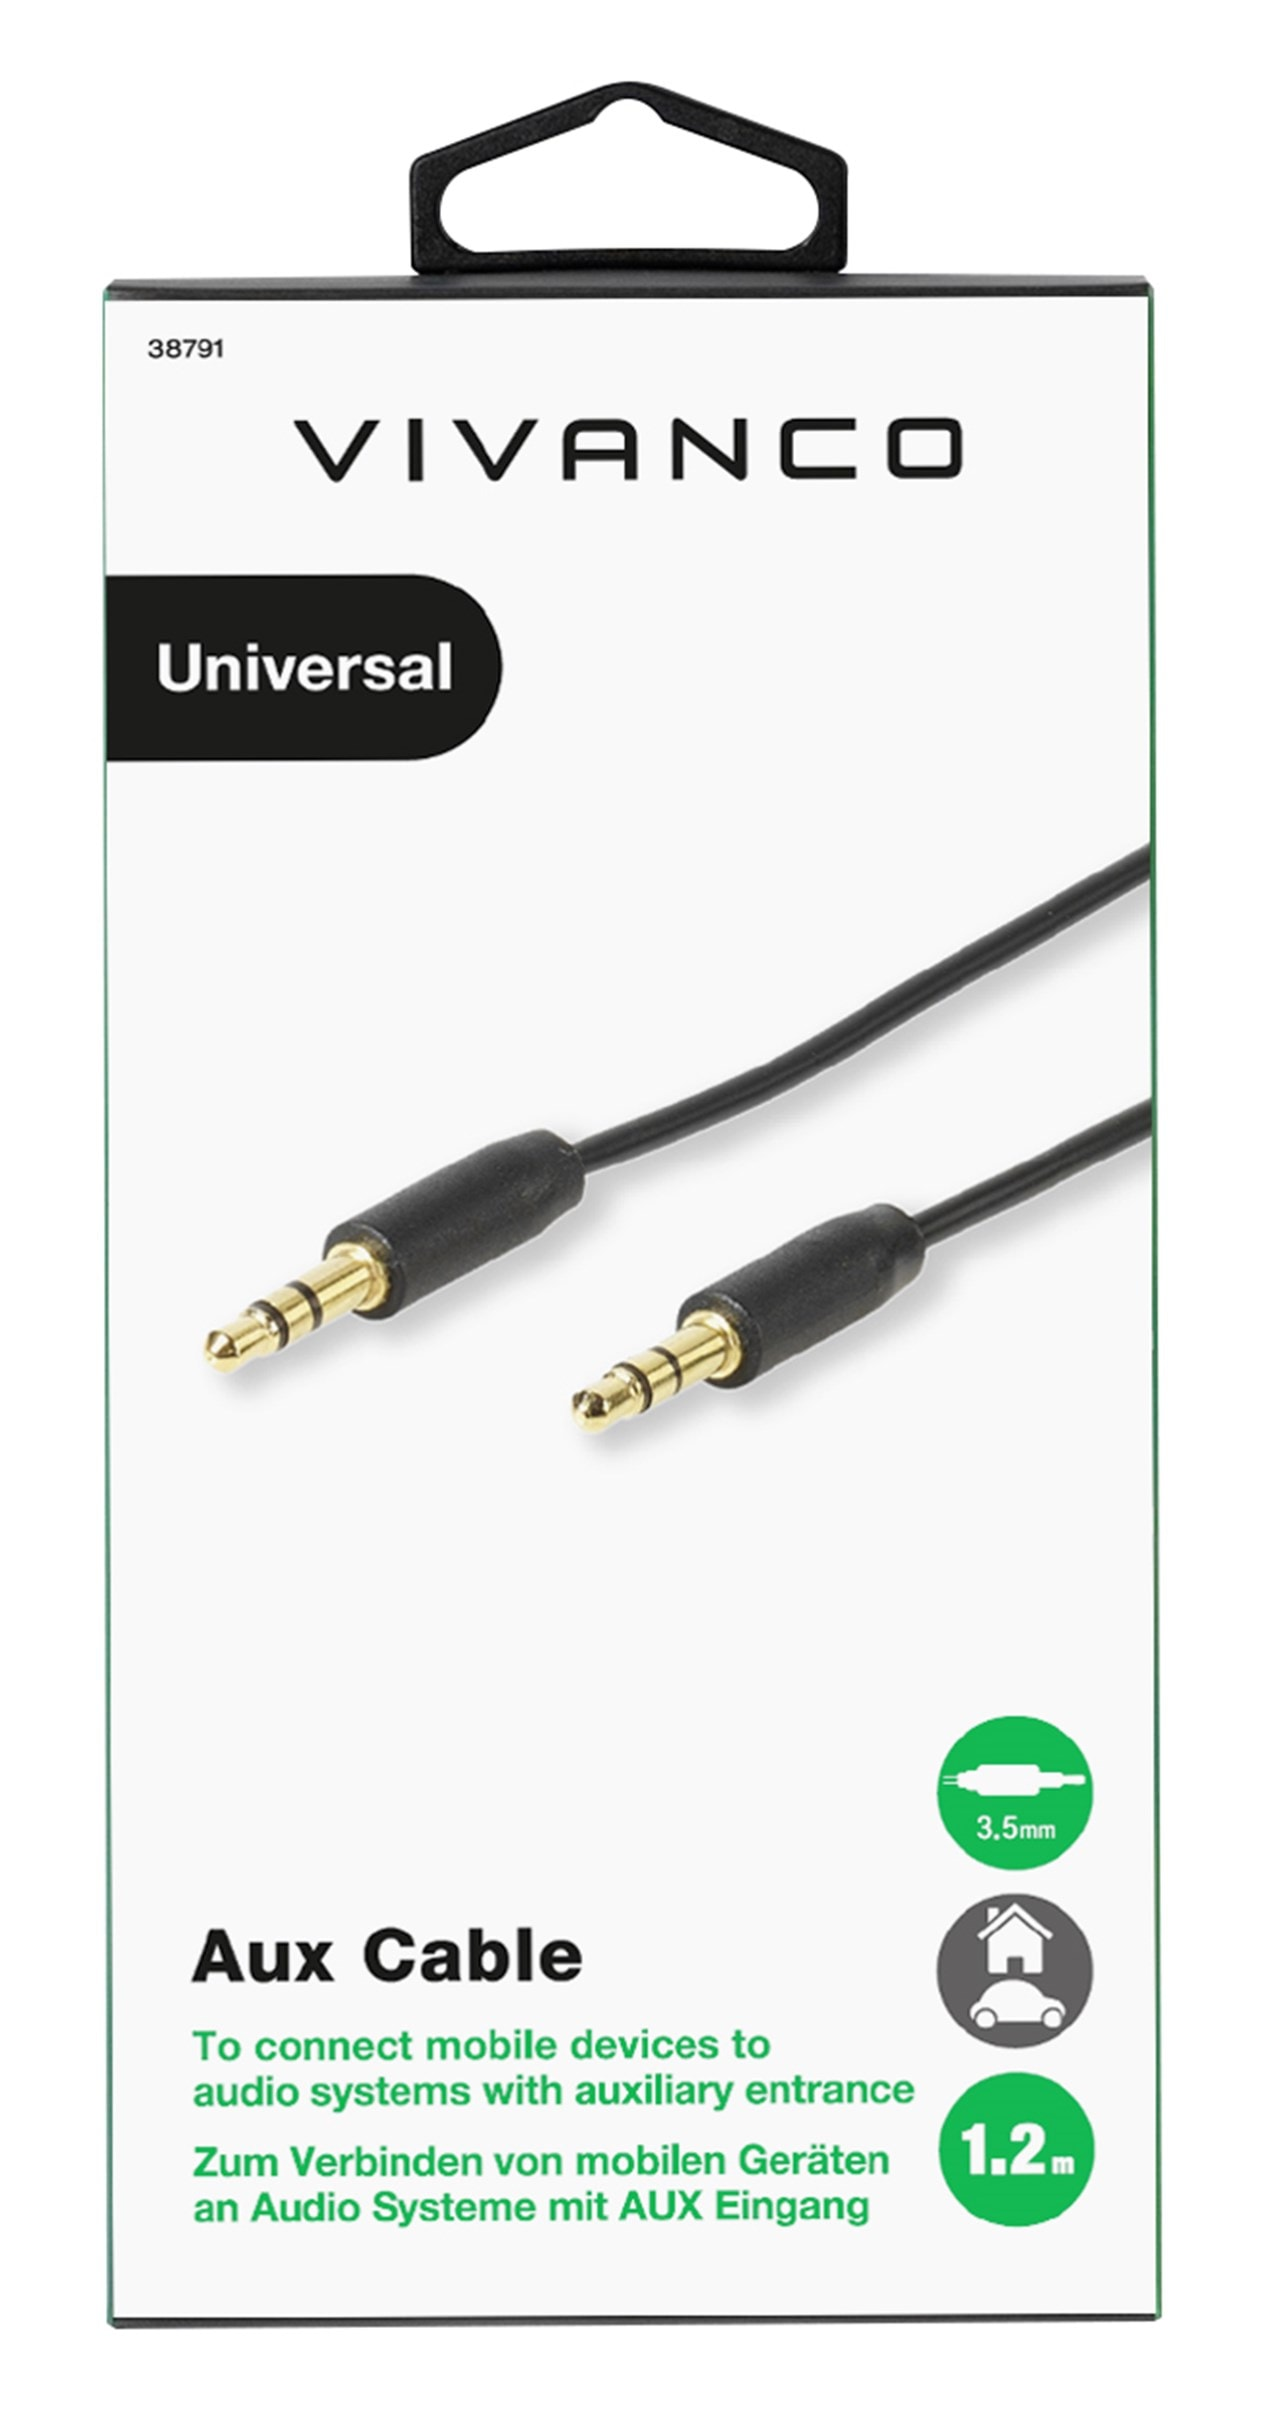 Vivanco Auxiliary Cable 3.5Mm - 1